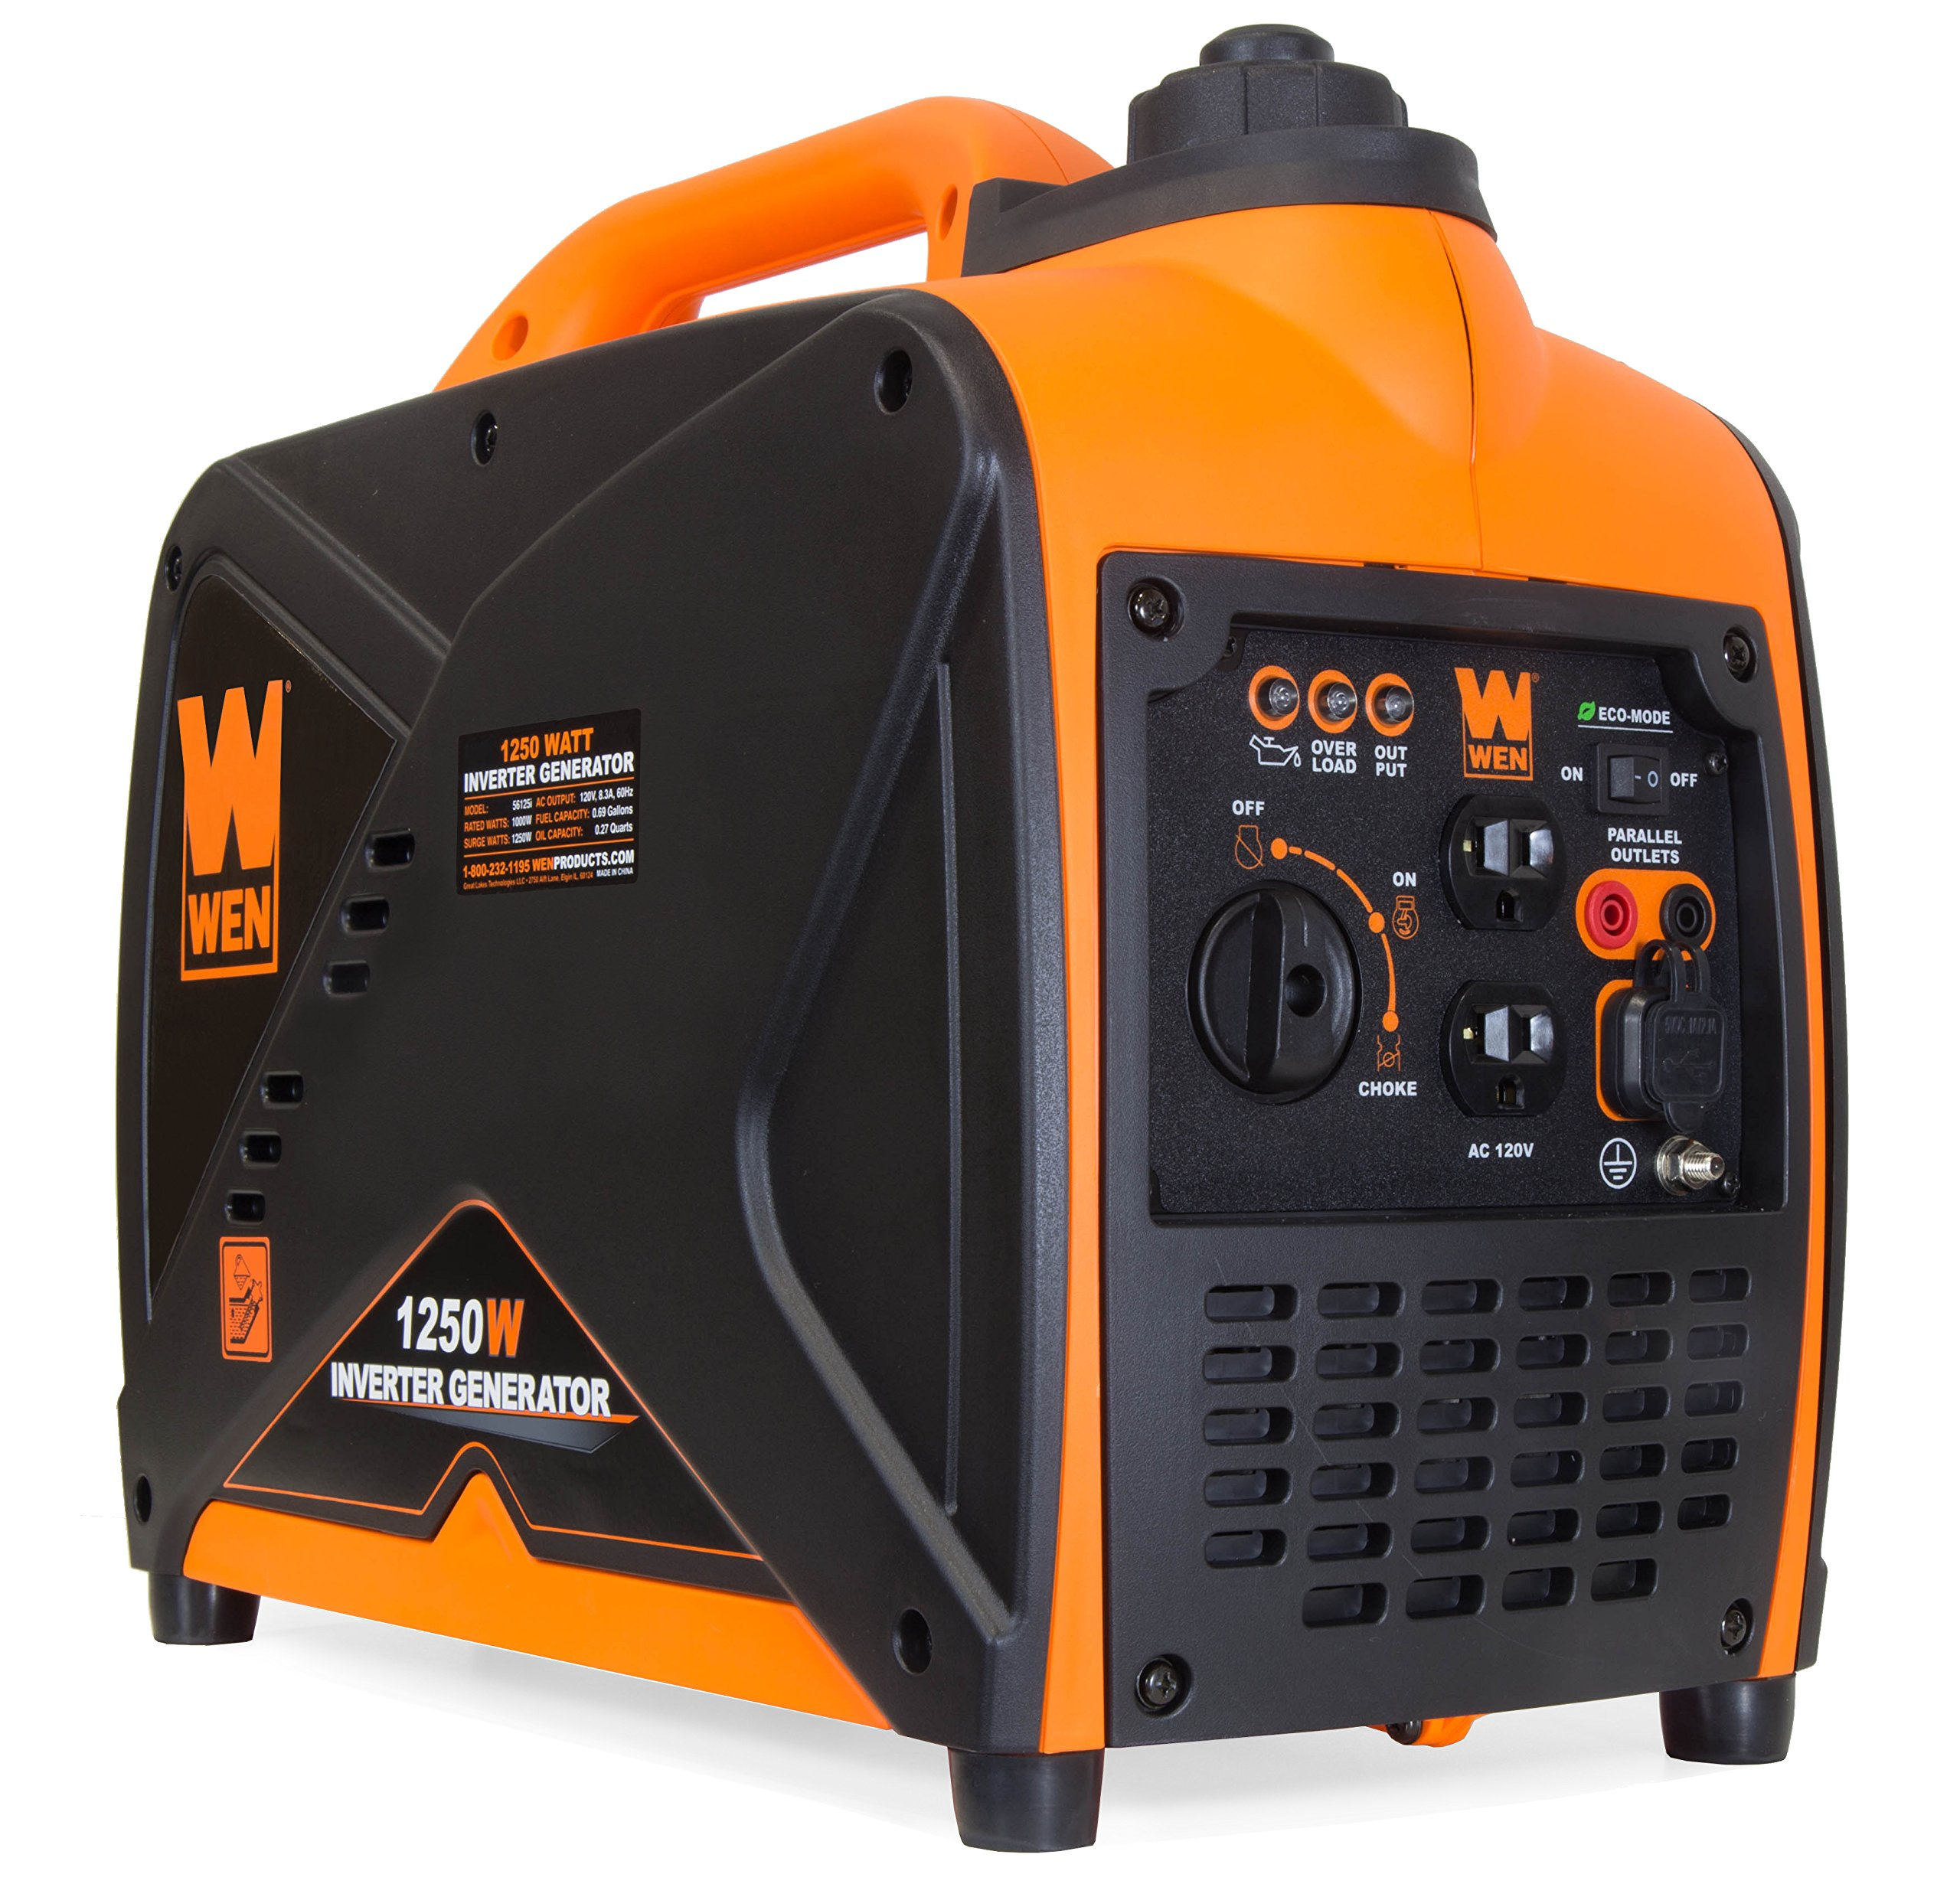 Wen 56125i Super Quiet Portable Inverter Generator,